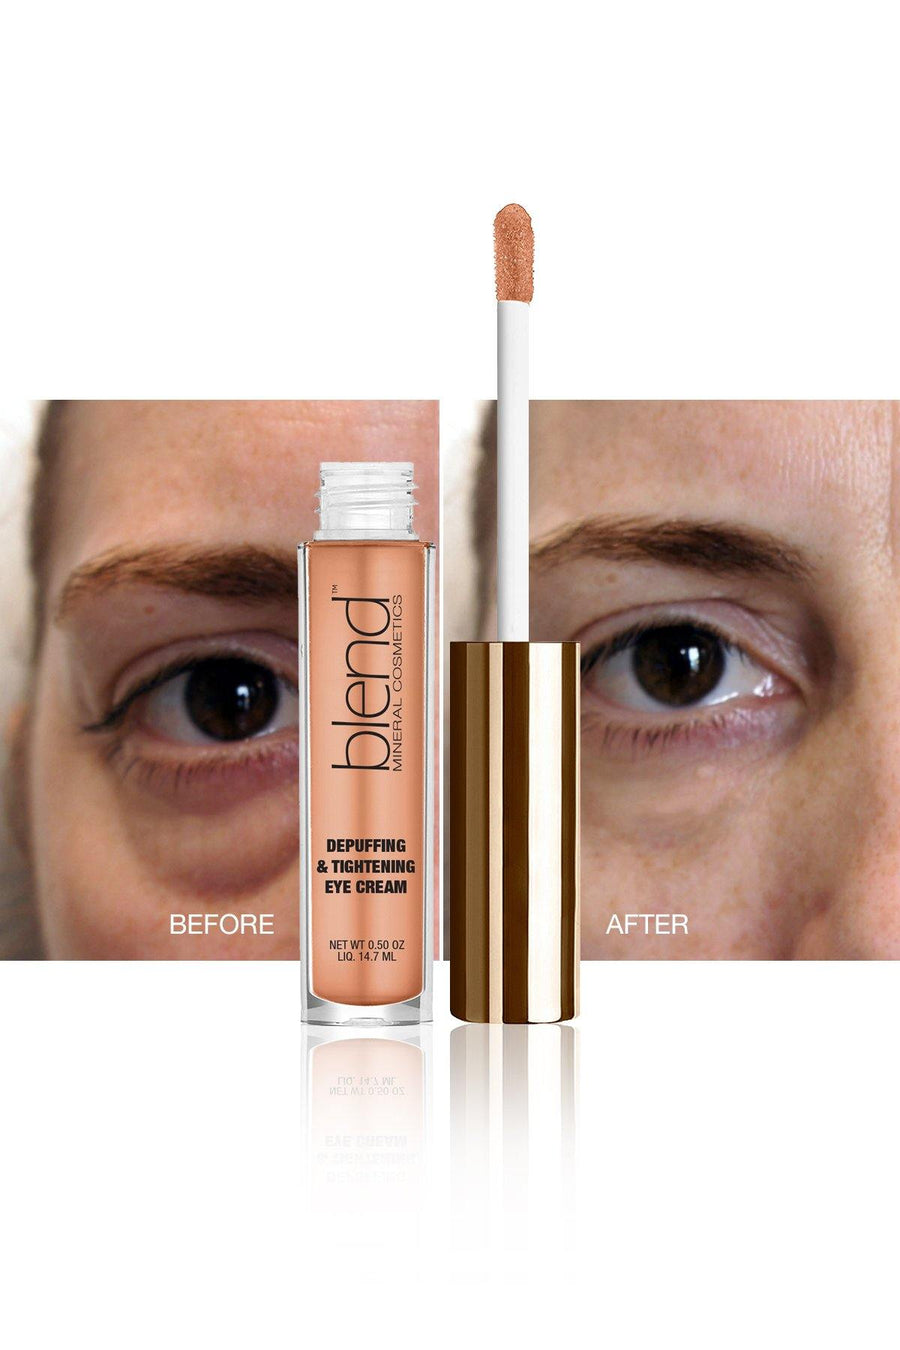 Depuffing & Tightening Eye Cream FREE - ENDS IN 3 DAYS ! - Blend Mineral Cosmetics